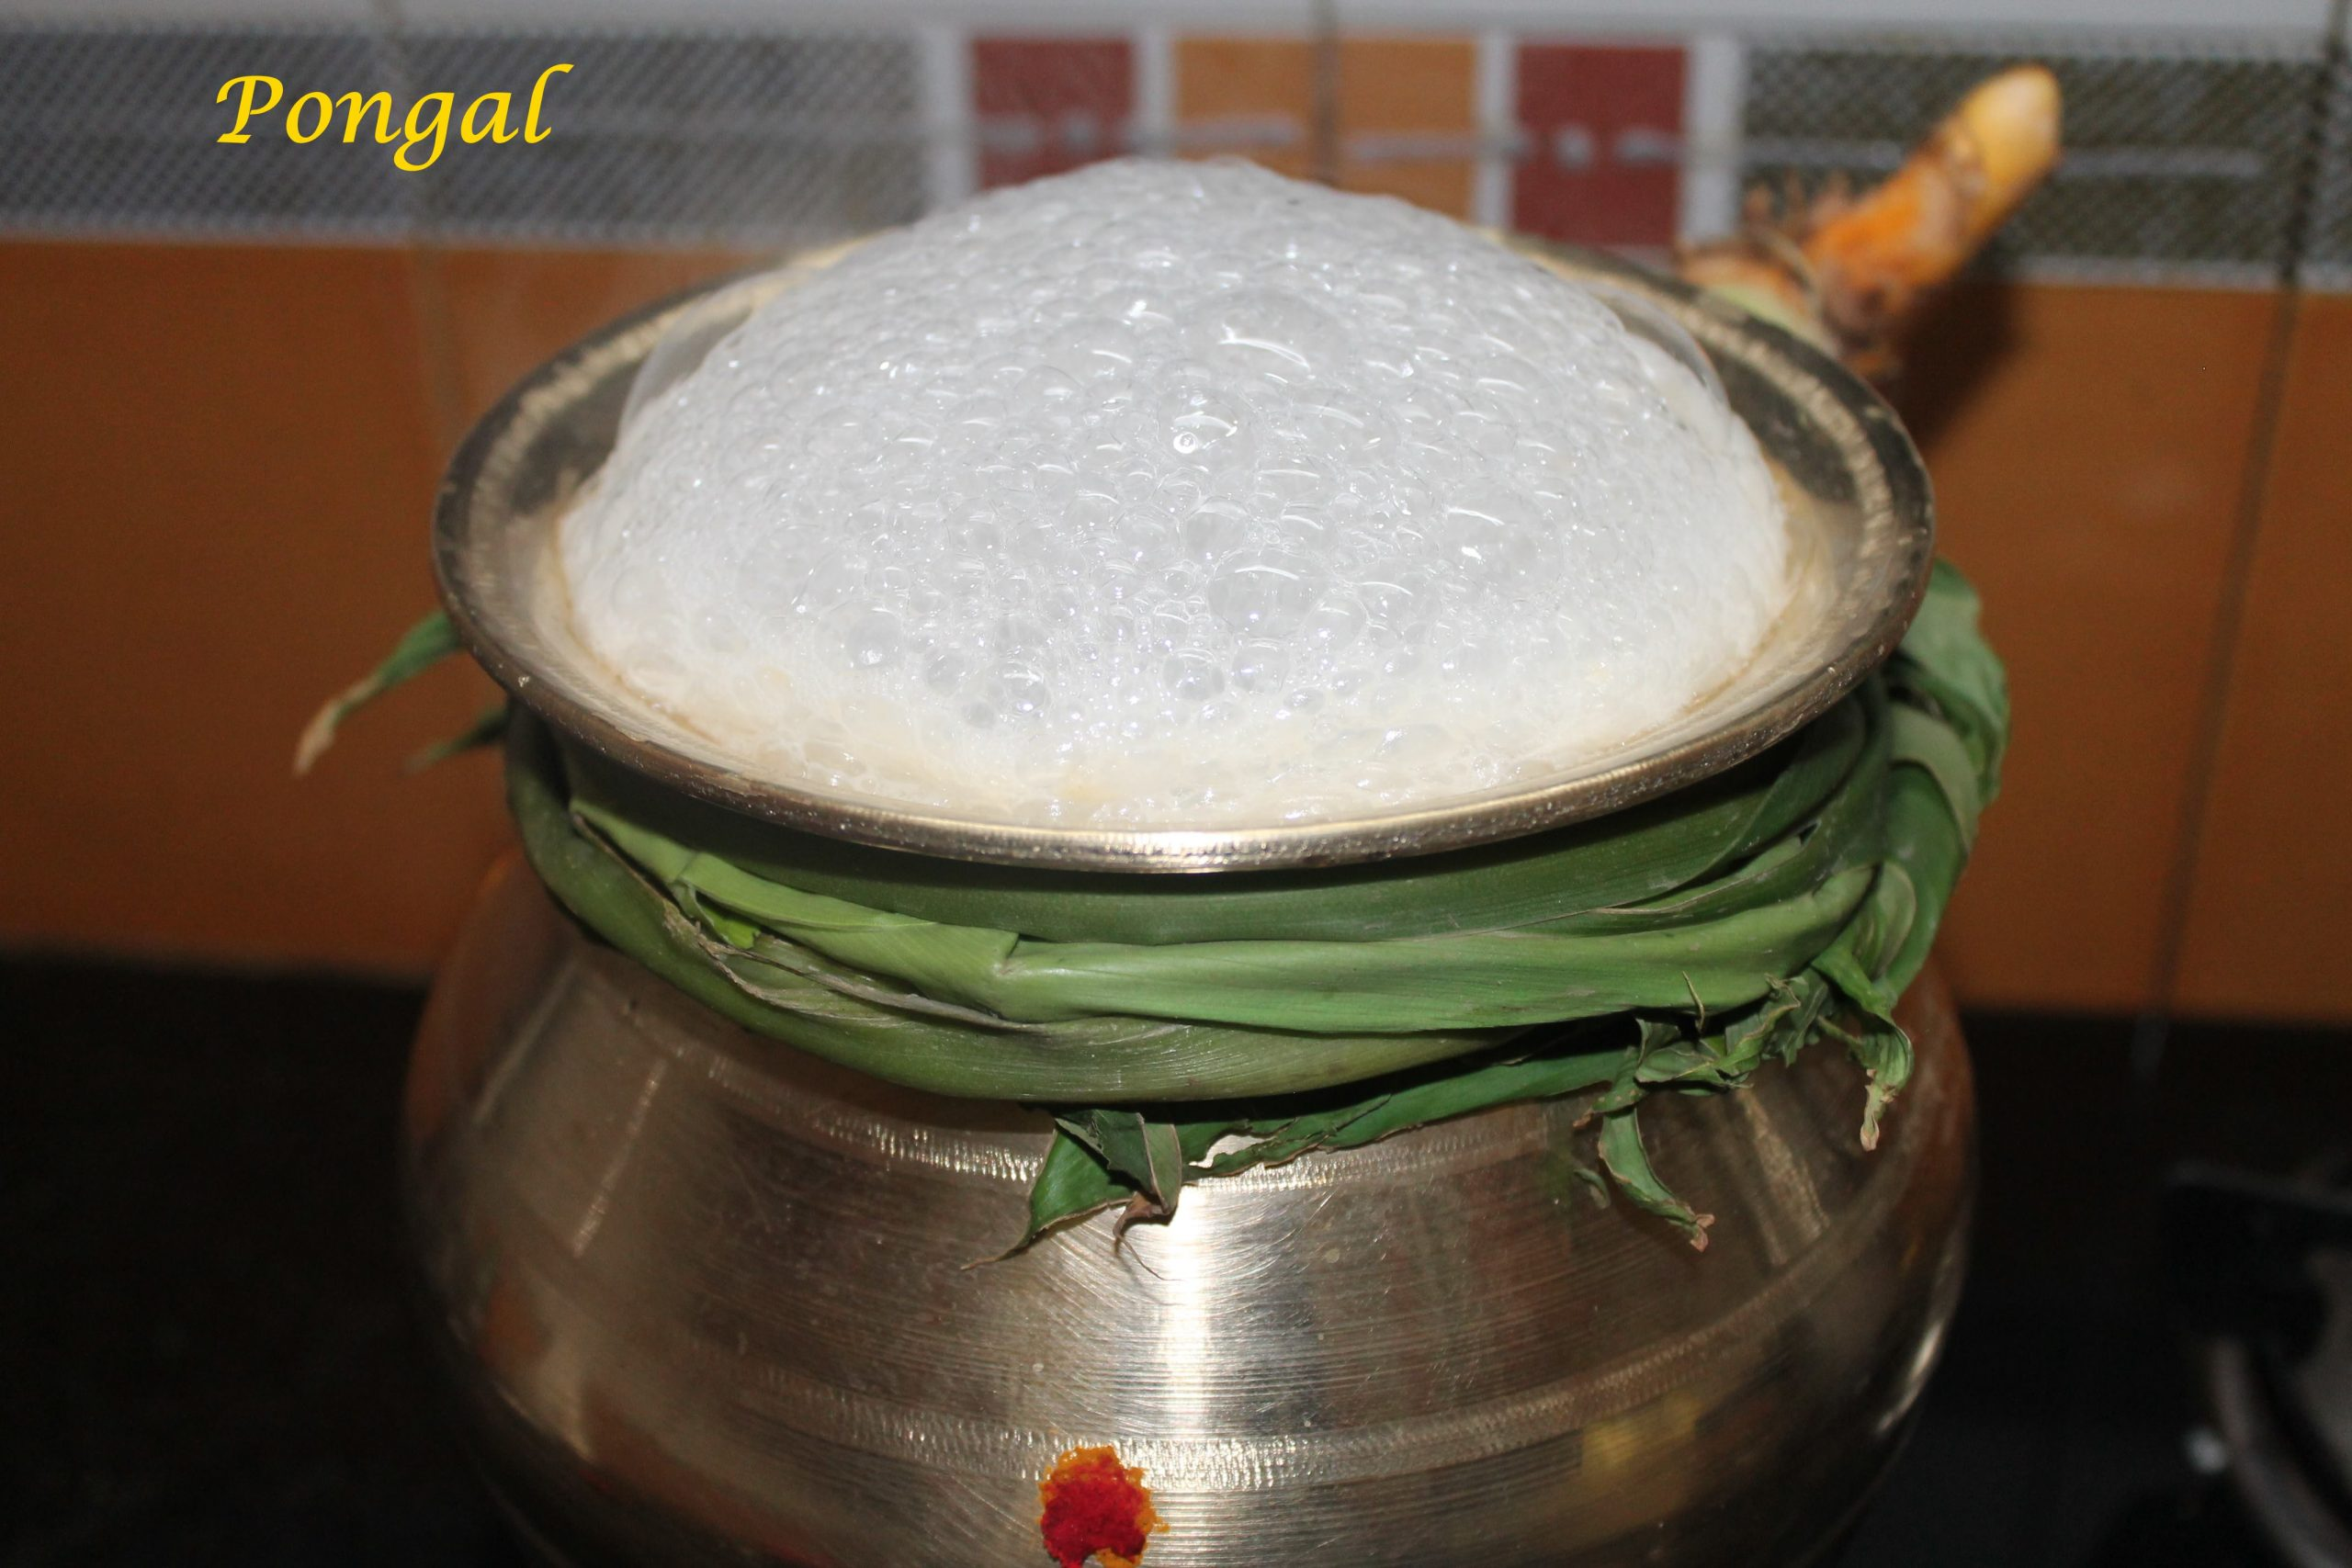 Pongal in pot